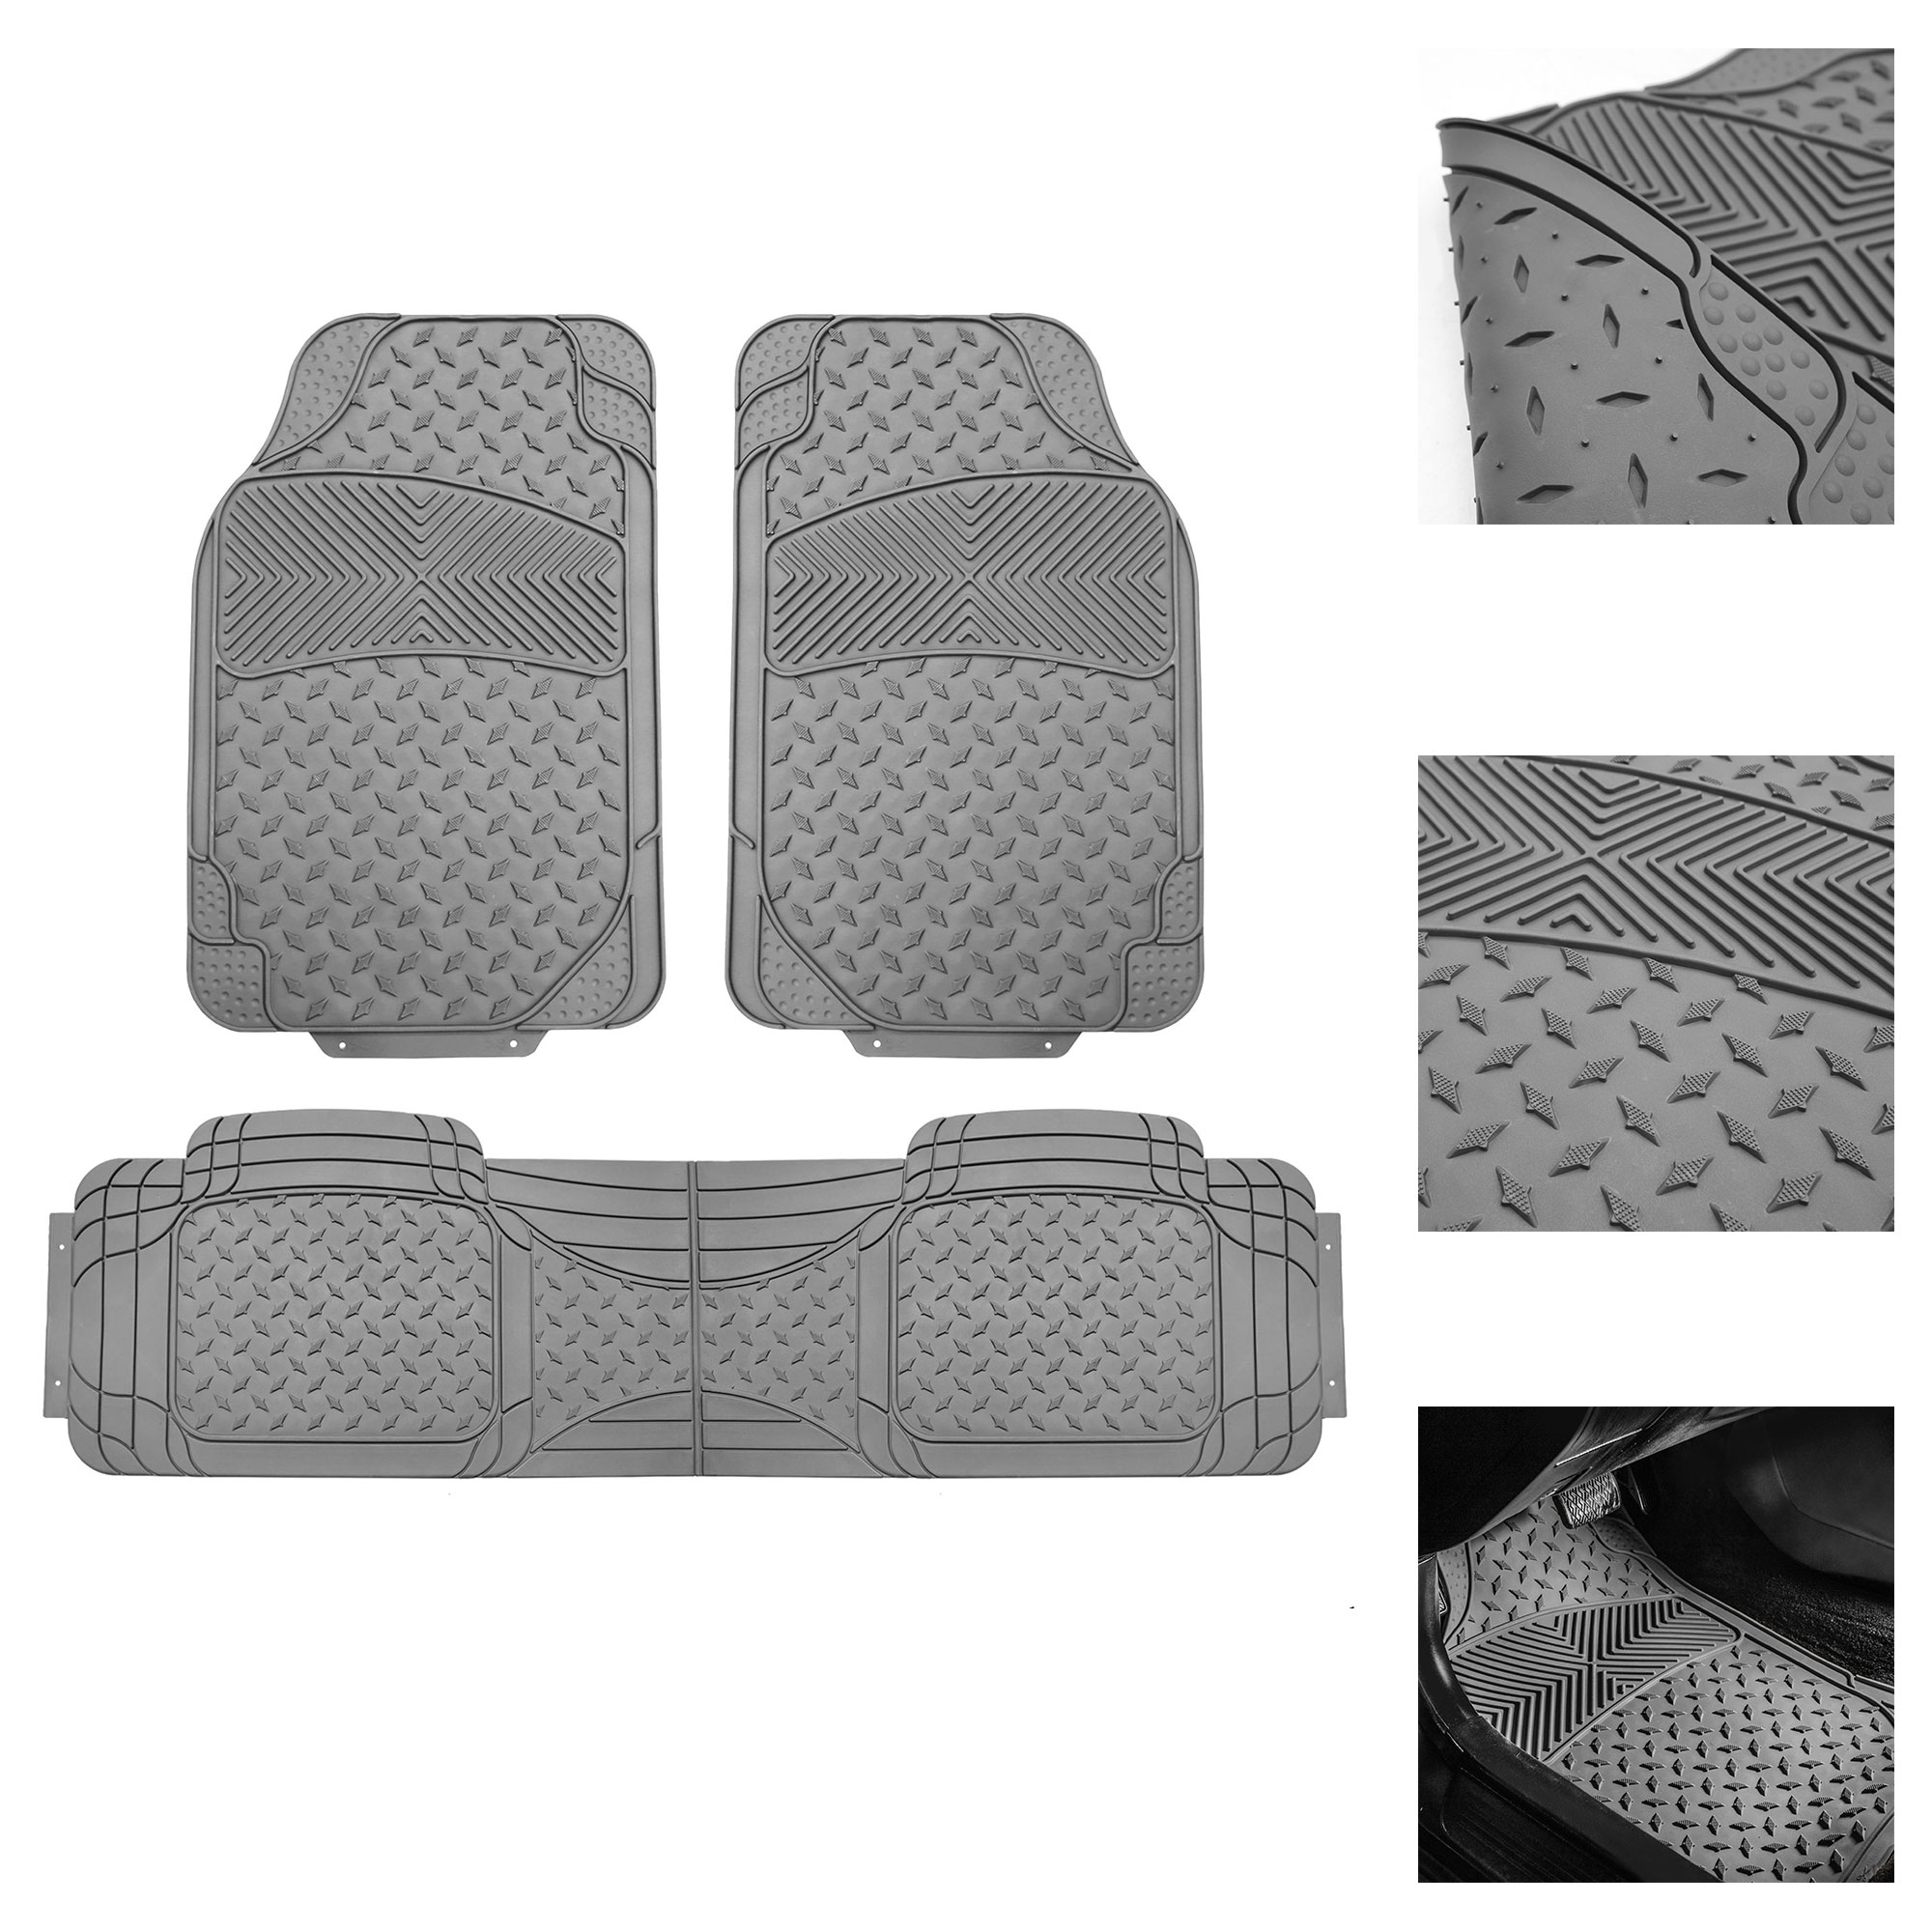 FH Group Semi Custom Trimmable Heavy Duty Floor Mats for Auto with Free Gift, 3 Colors